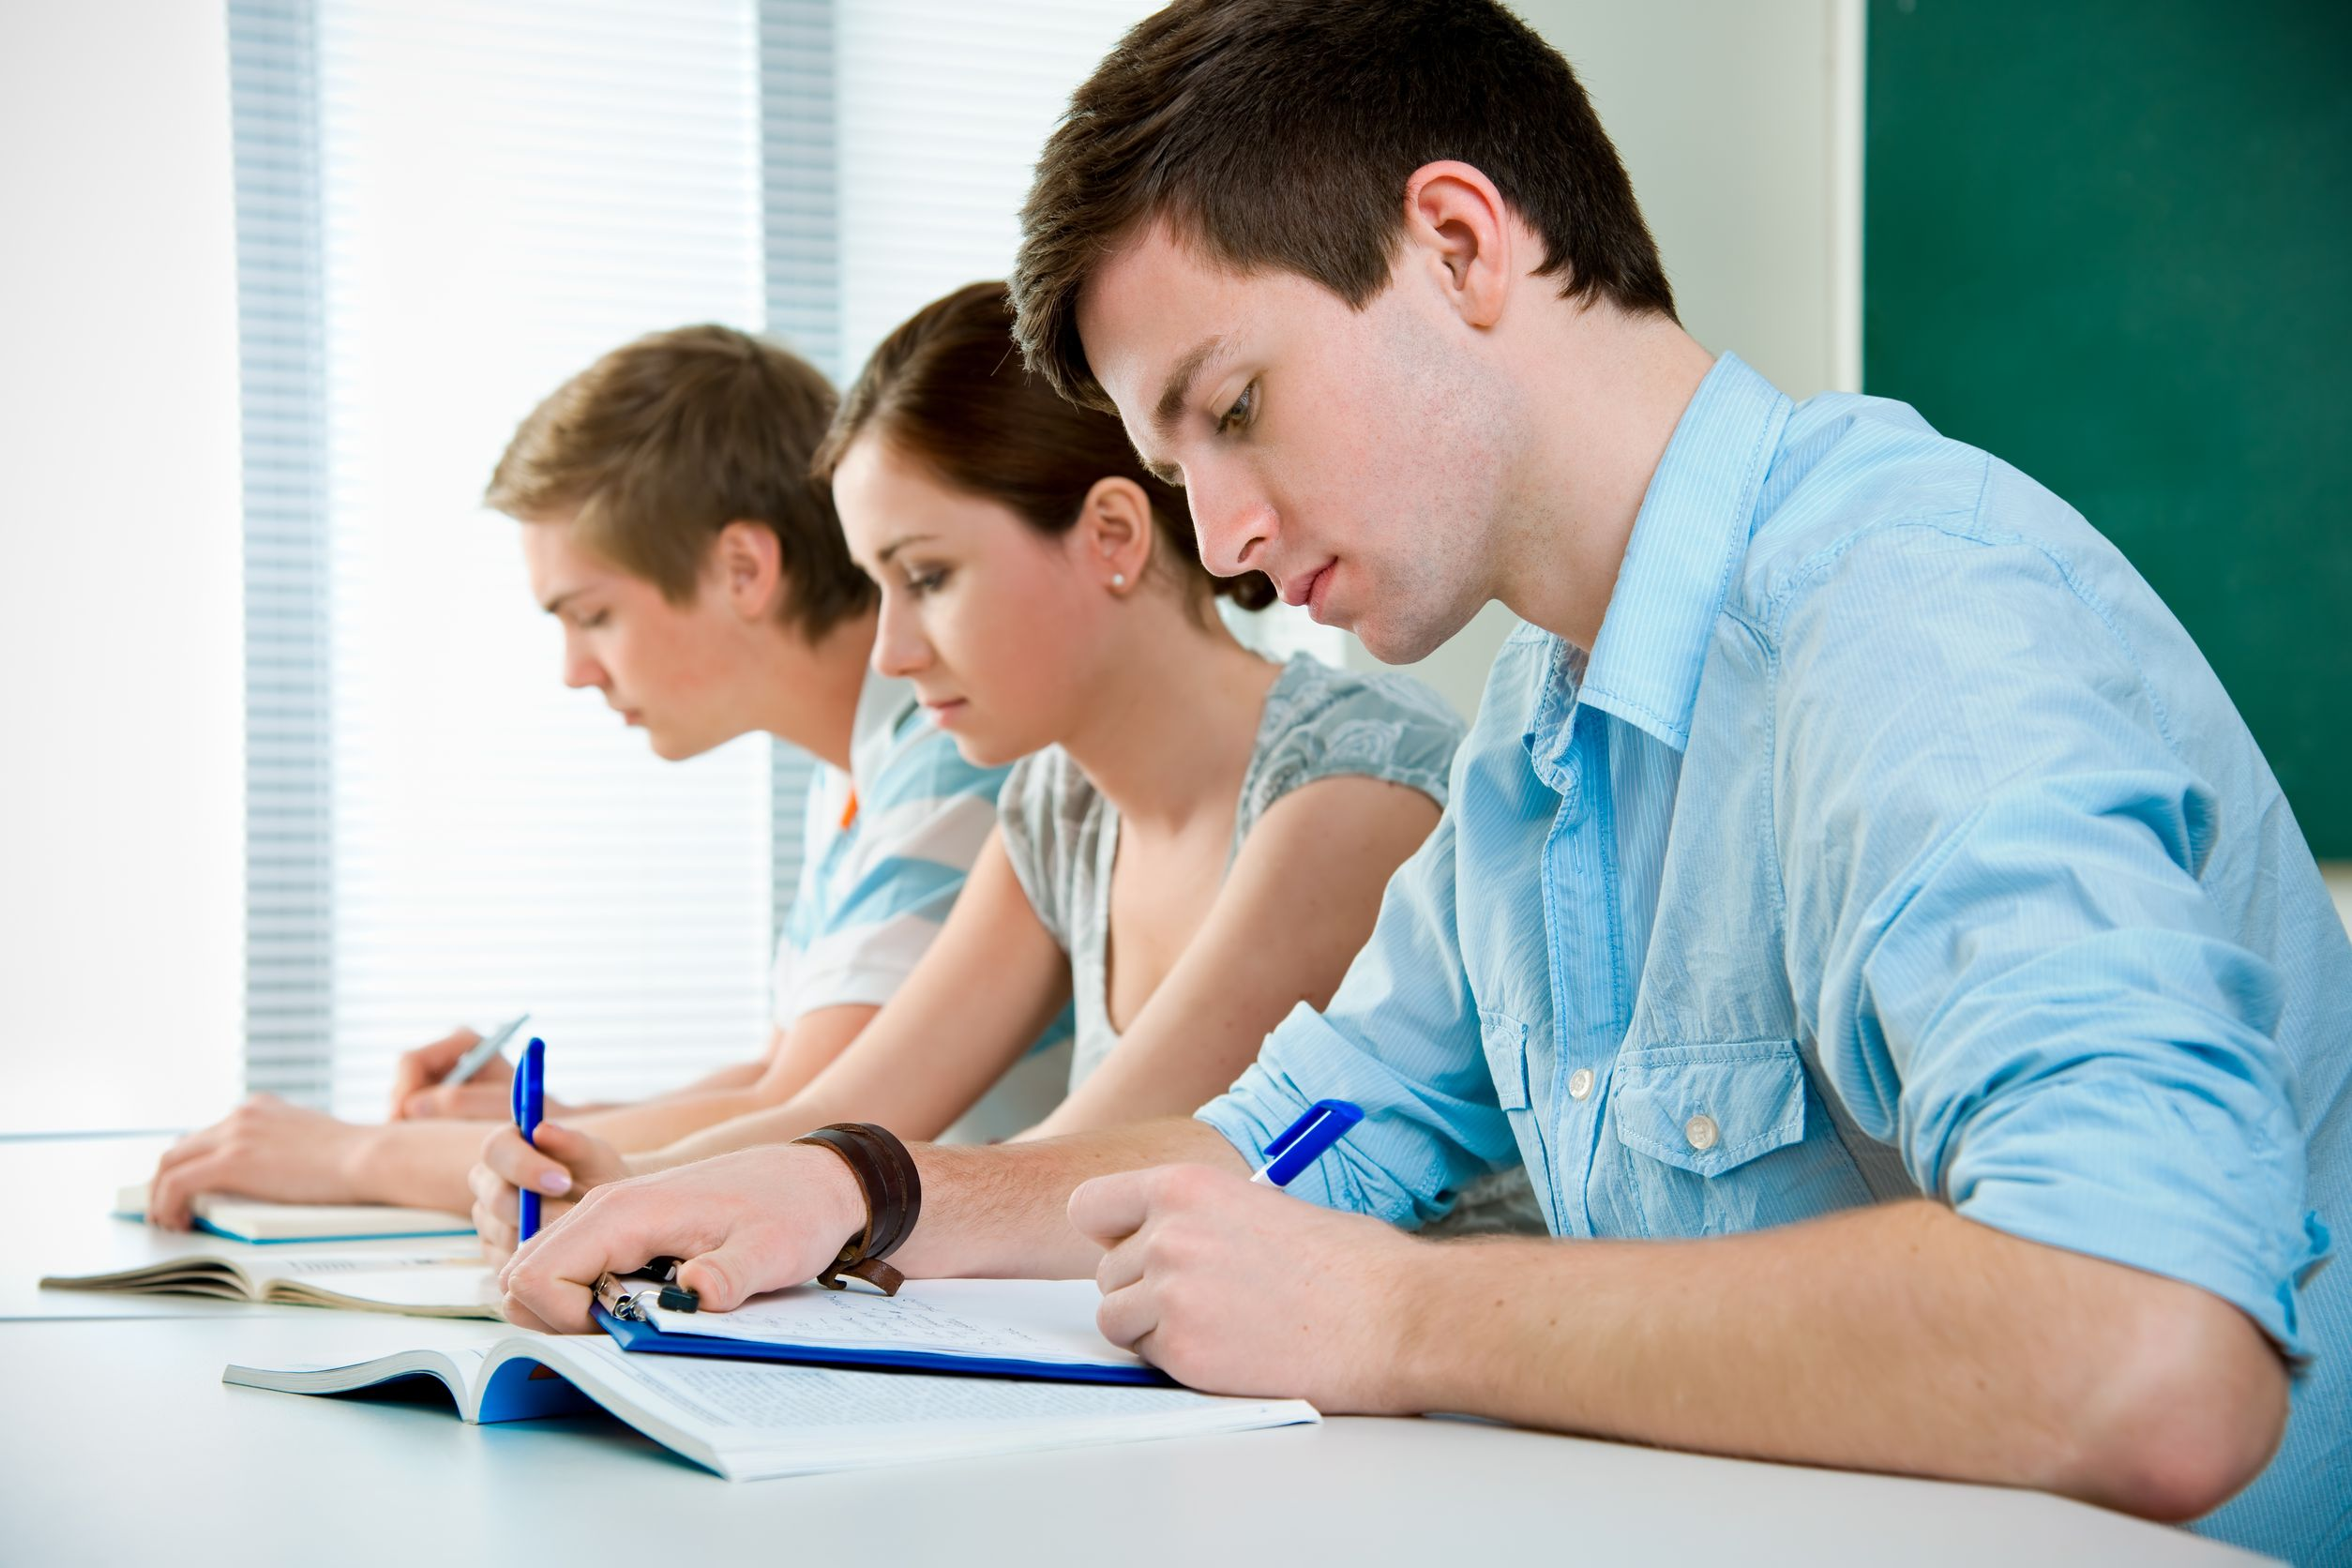 writing paper for college students essay writing service school and college students benefit from the custom research